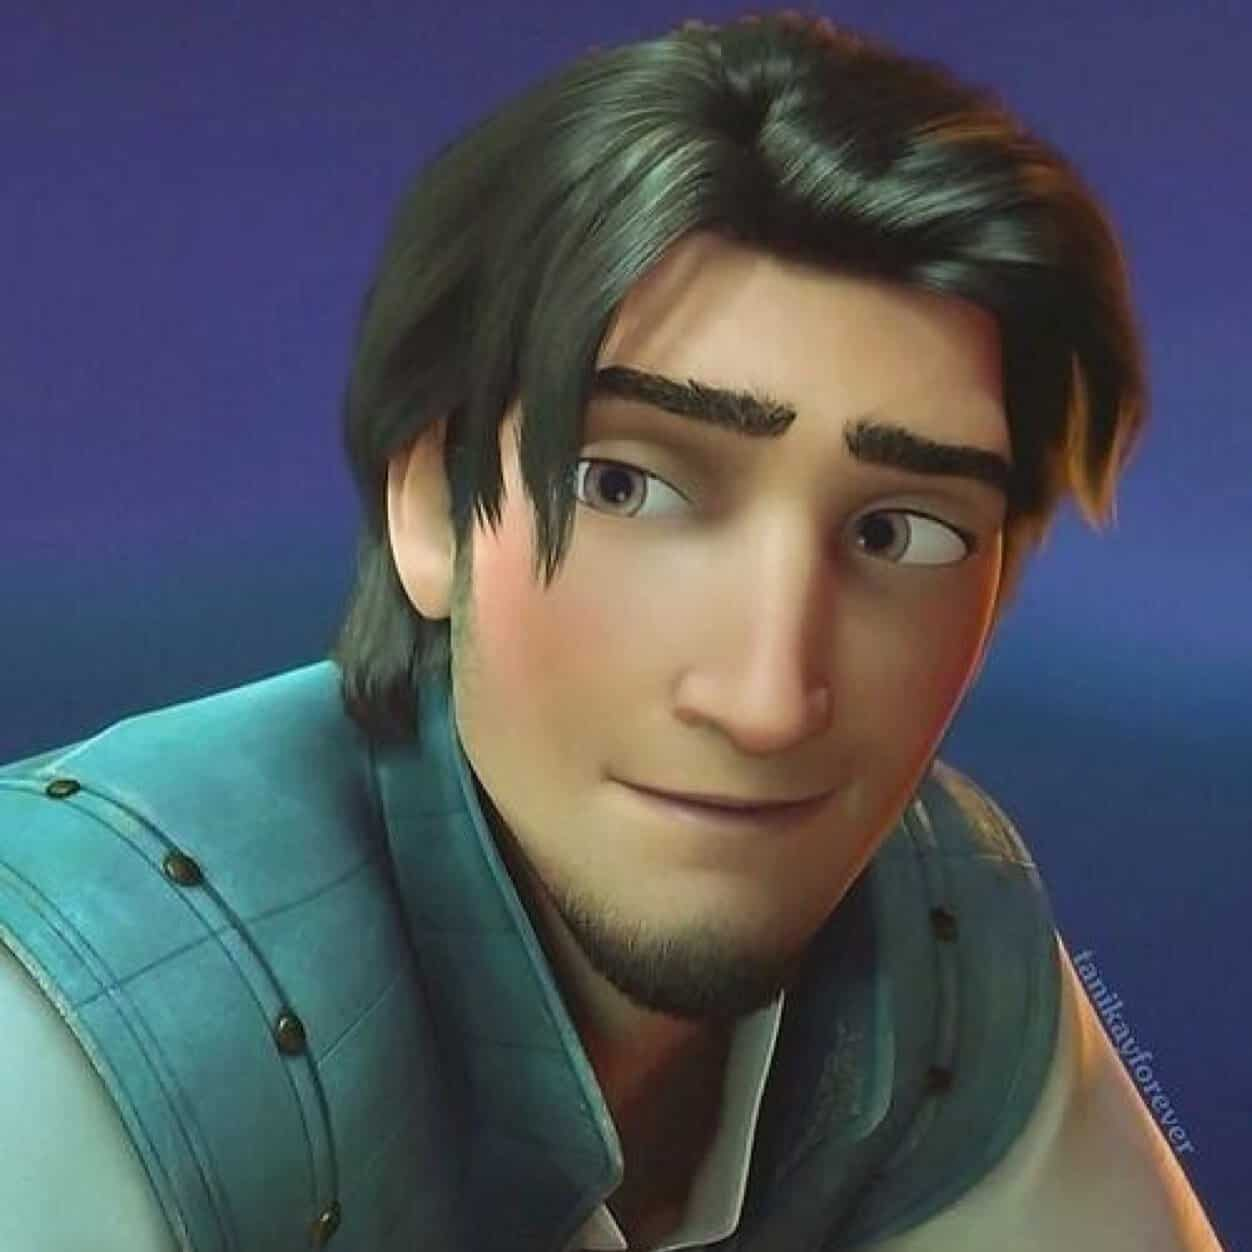 How Old is Flynn Rider?